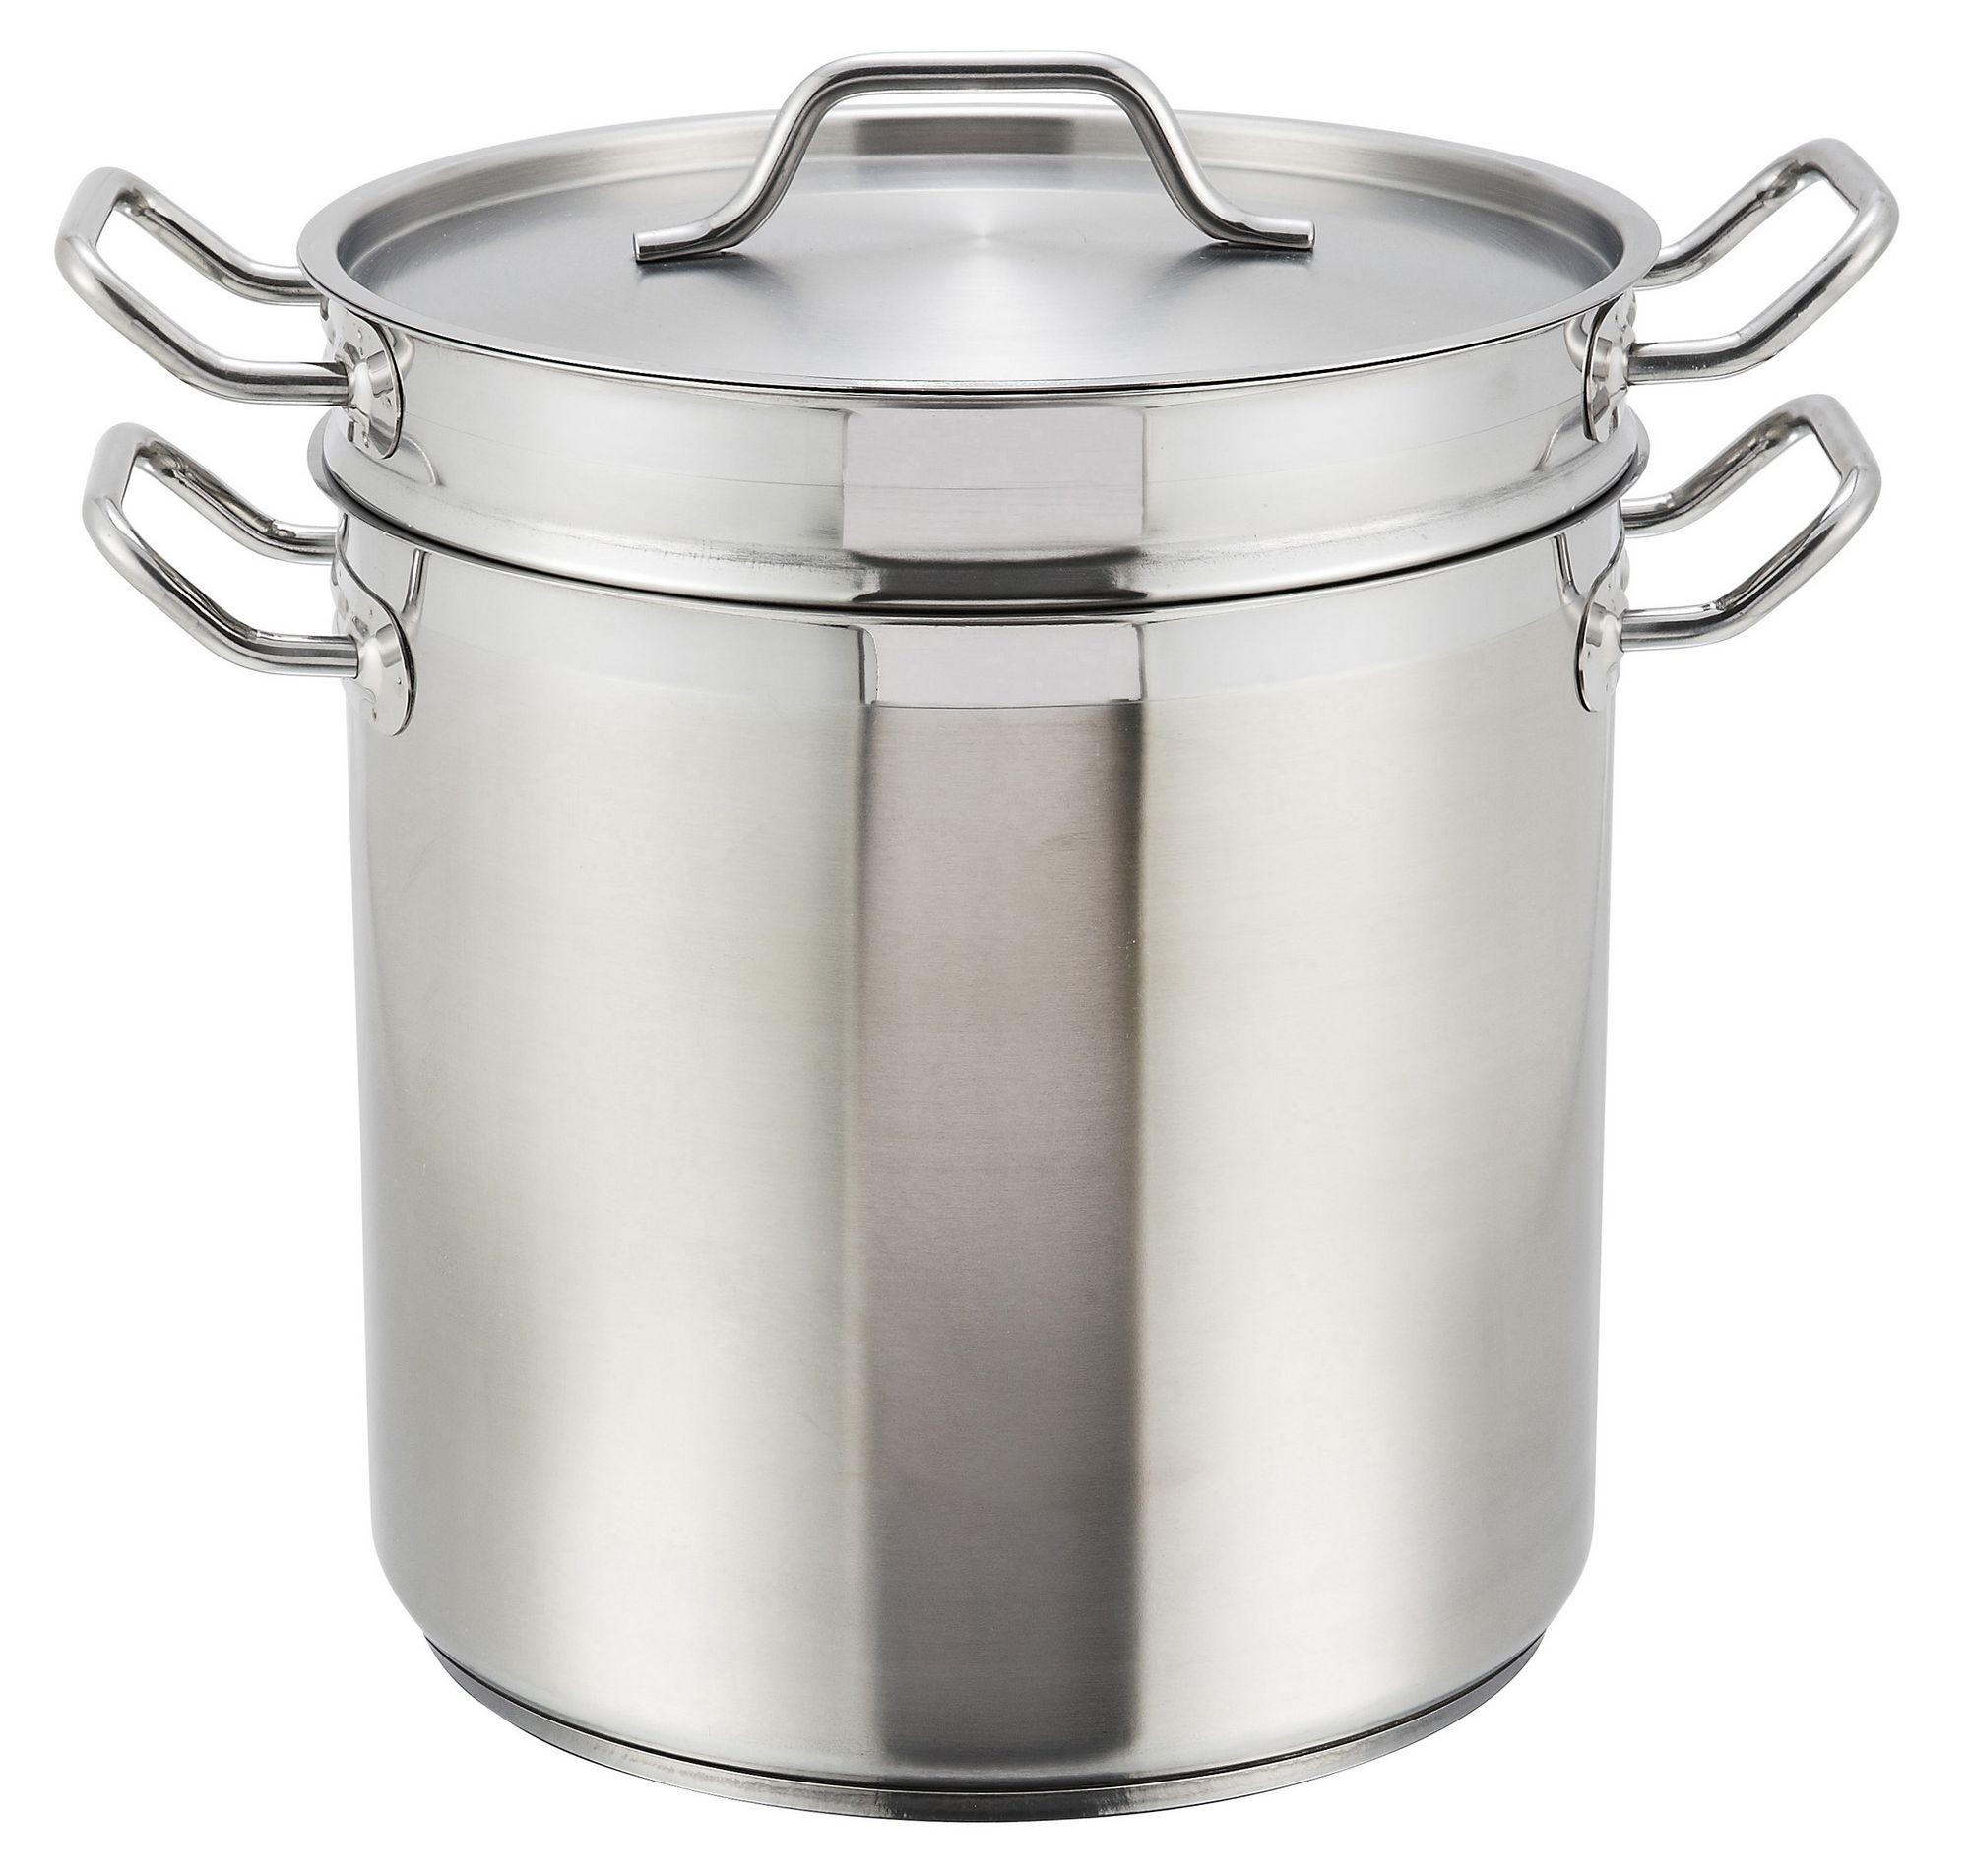 Stainless Steel 20-Qt Master Cook Steamer/Pasta Cooker With Cover (5 mm aluminum core NSF)